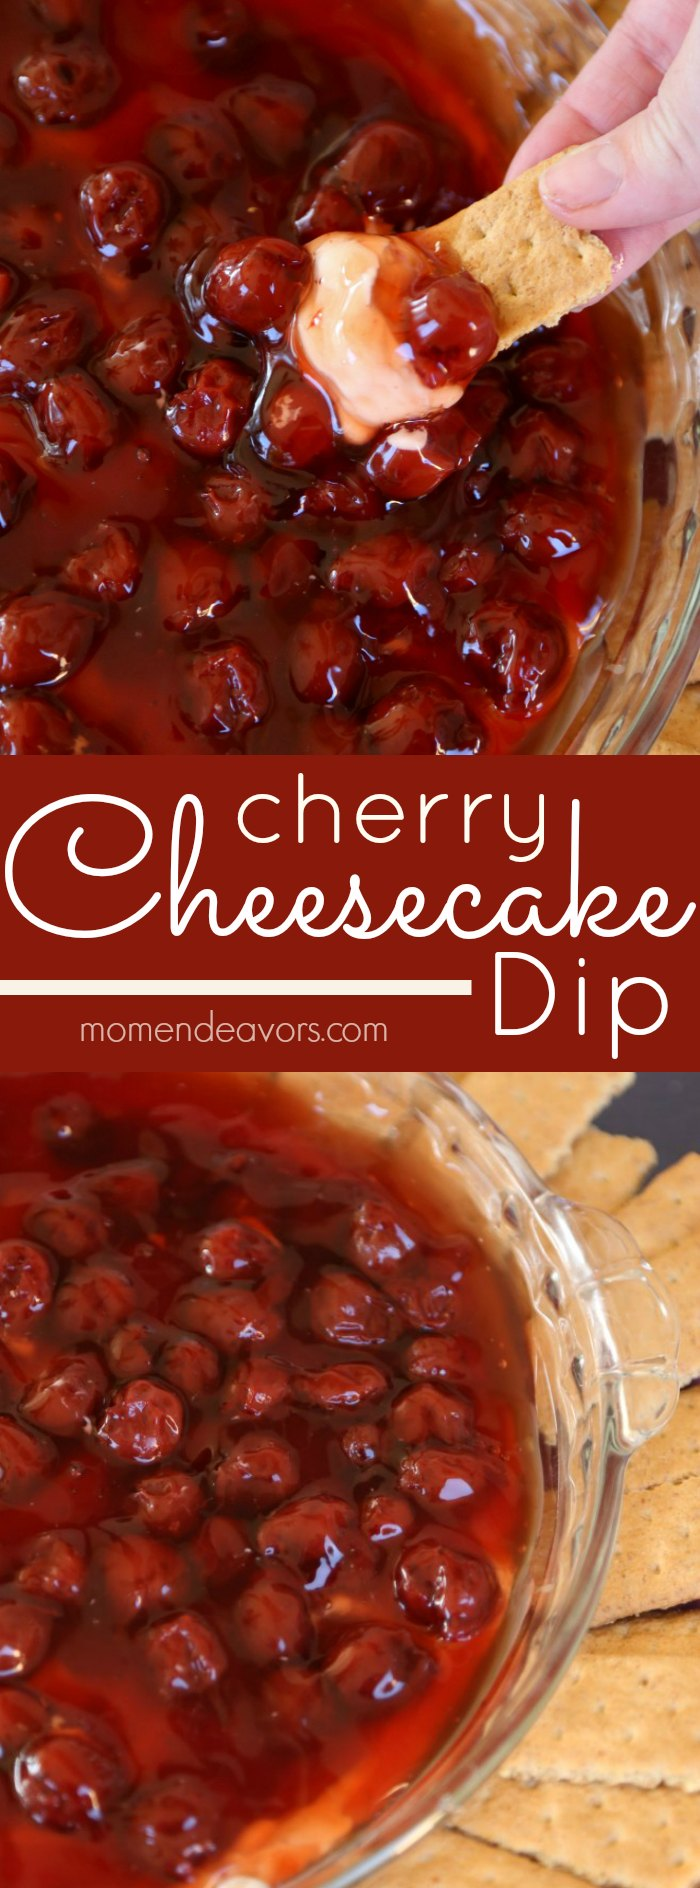 No-bake cherry cheesecake dip